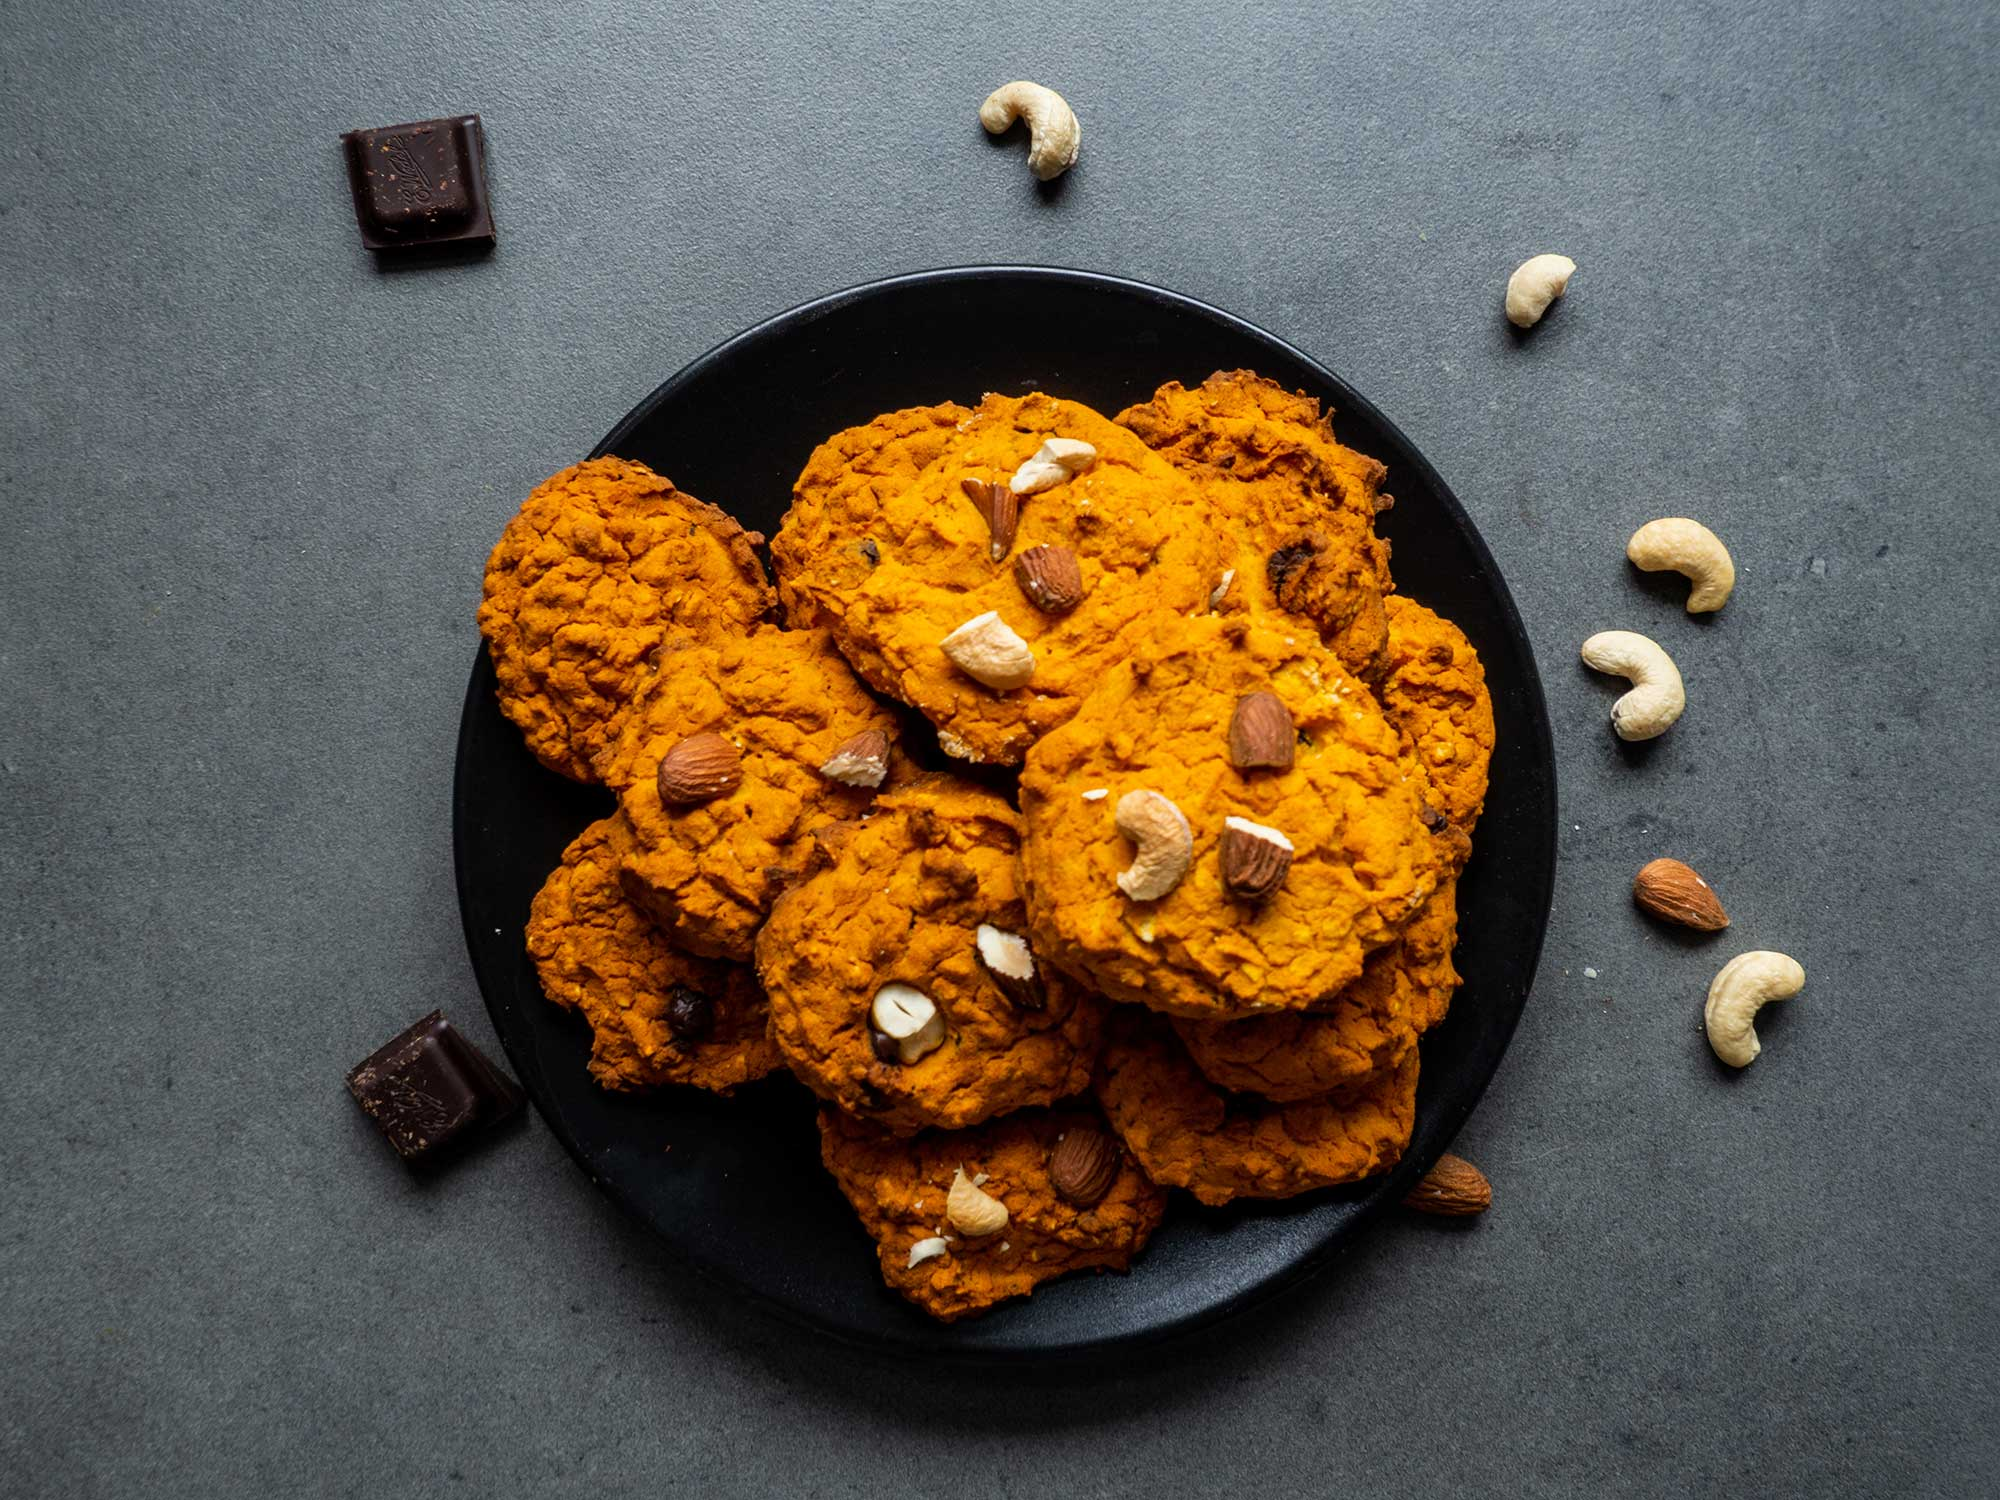 Pumpkin Cookies with Chocolate, Almonds and Cashews